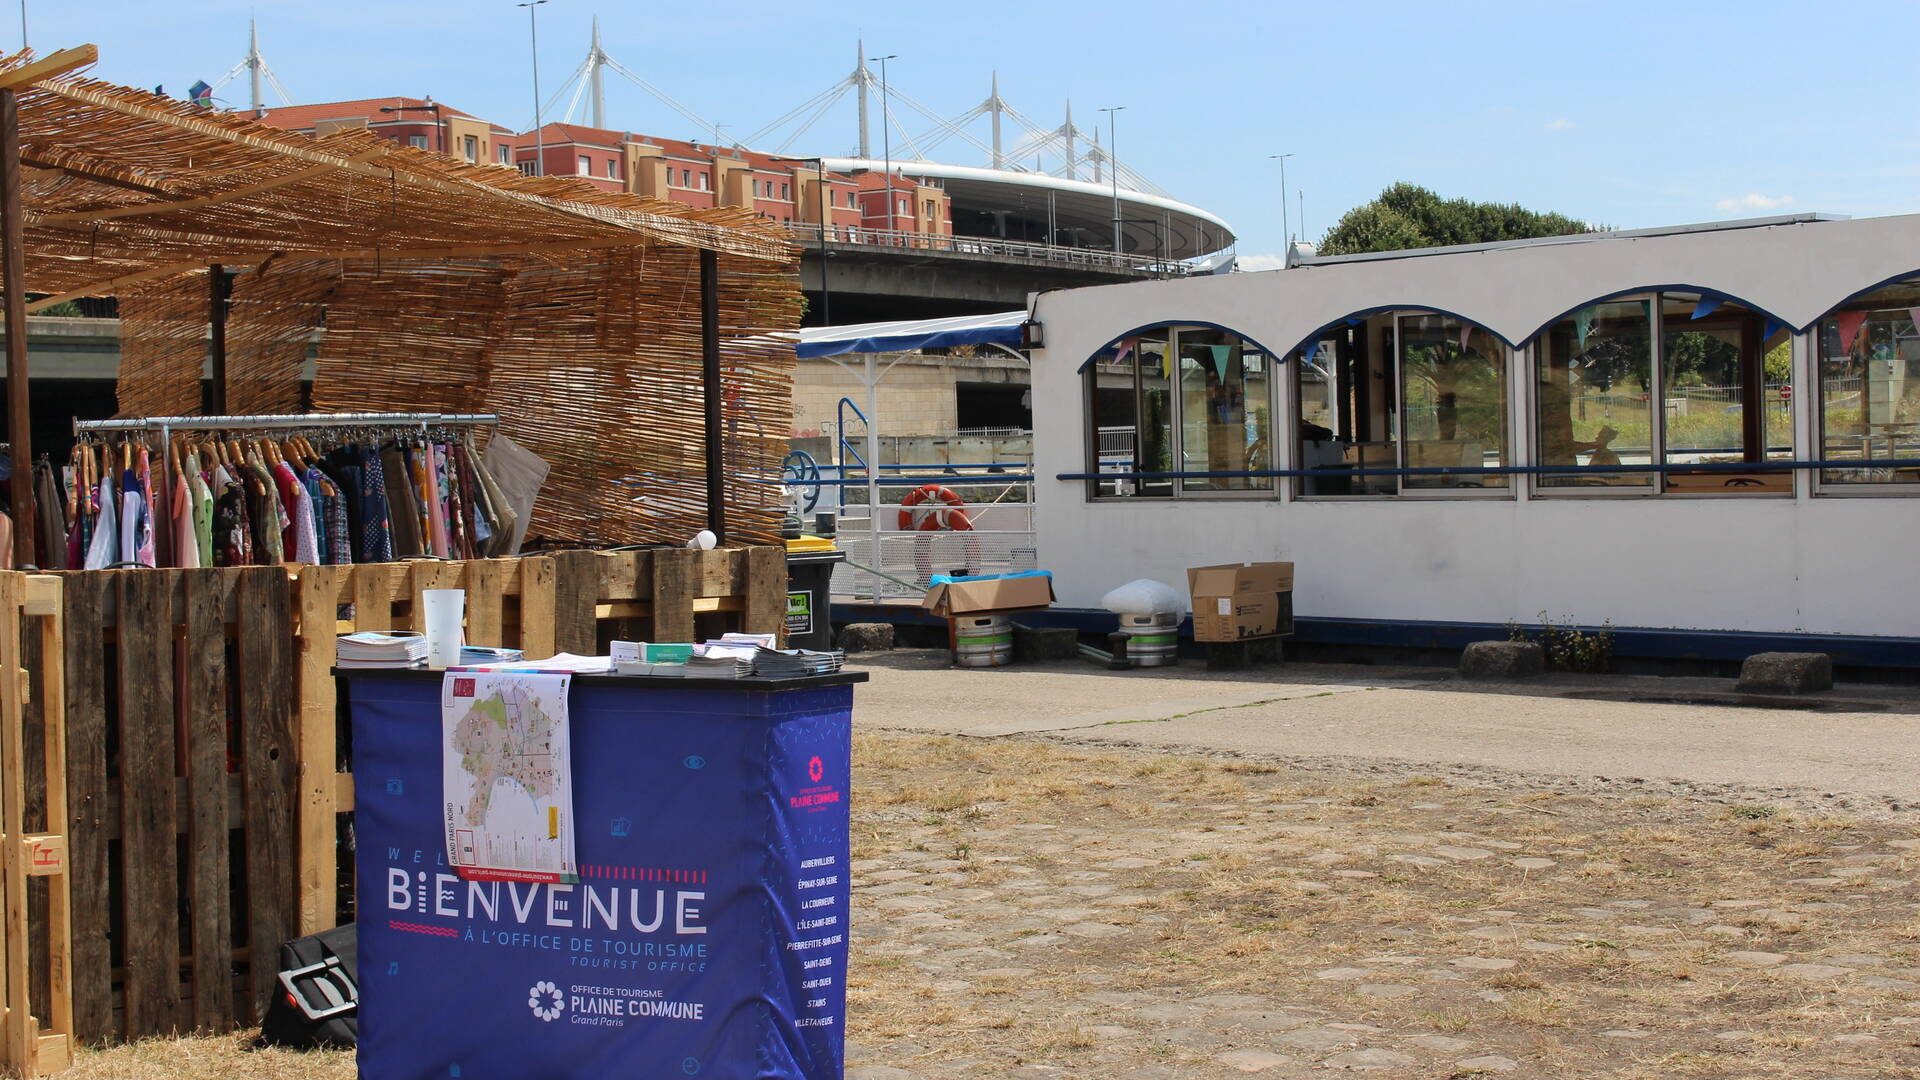 kermesse-electronique-2019-bassin-maltournee-saint-denis-tourisme-seine-saint-denis-plaine-commune-grand-paris-nord